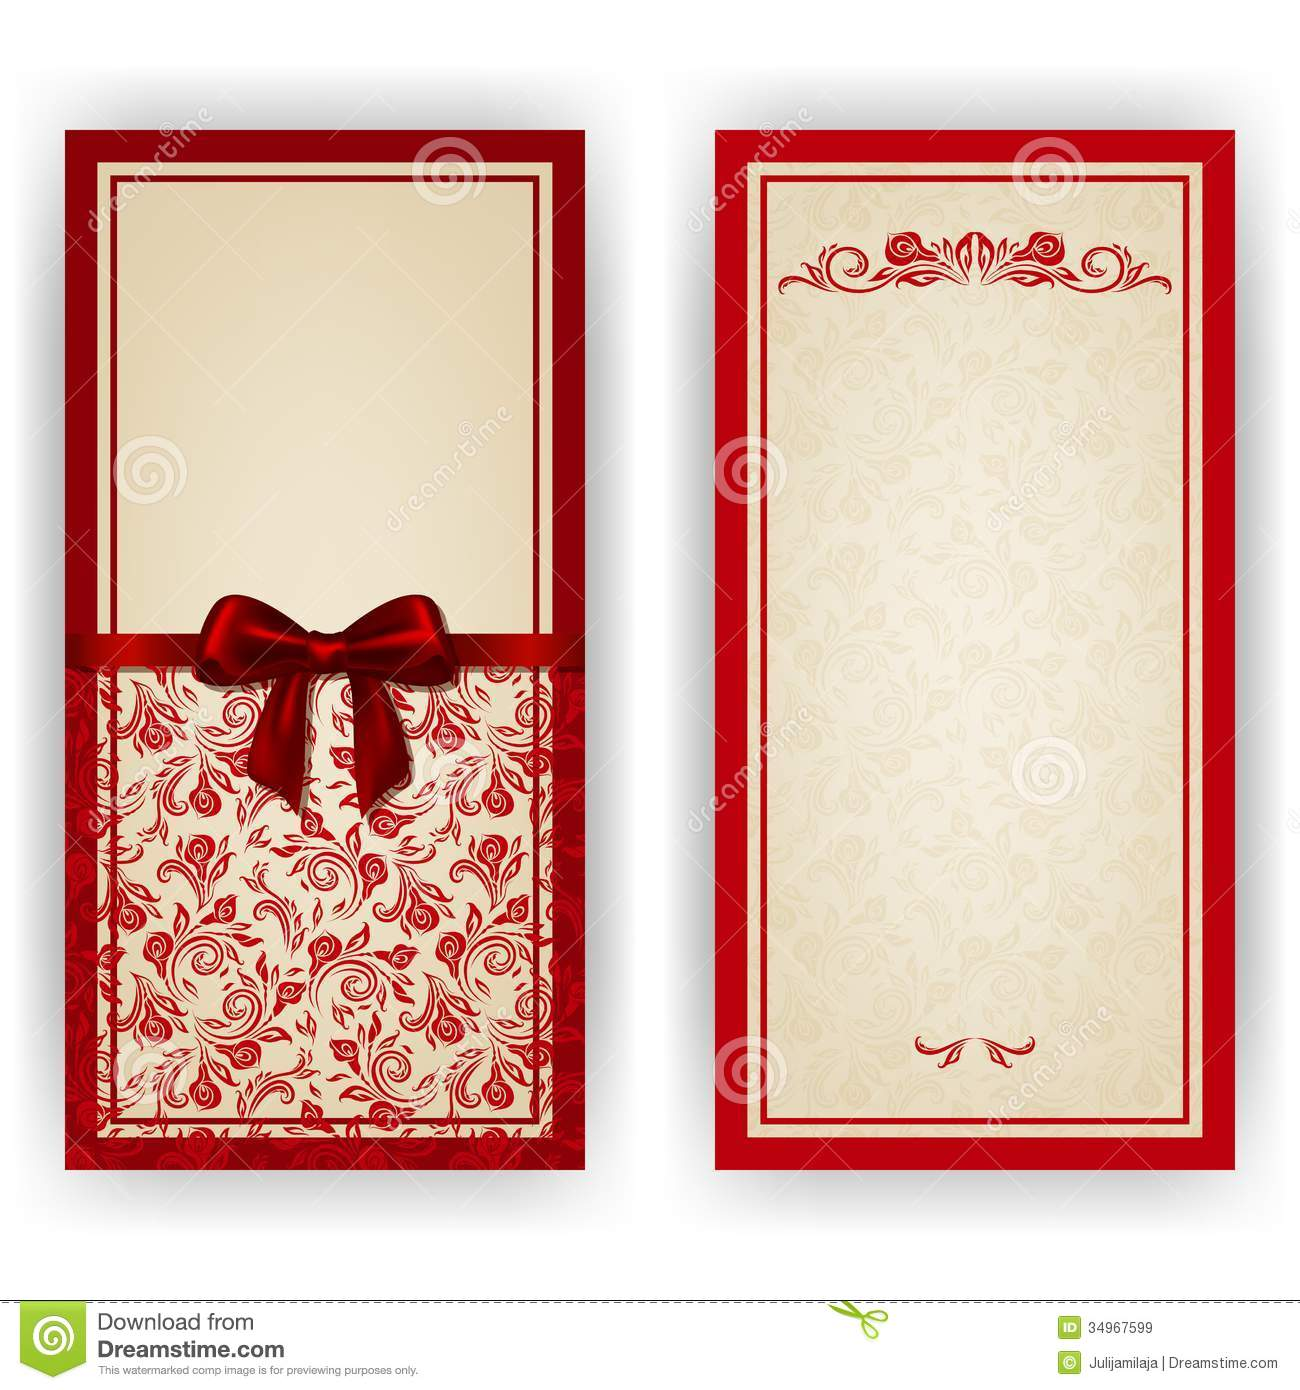 Elegant Vector Template For Luxury Invitation Royalty Free – Free Templates for Invitation Cards